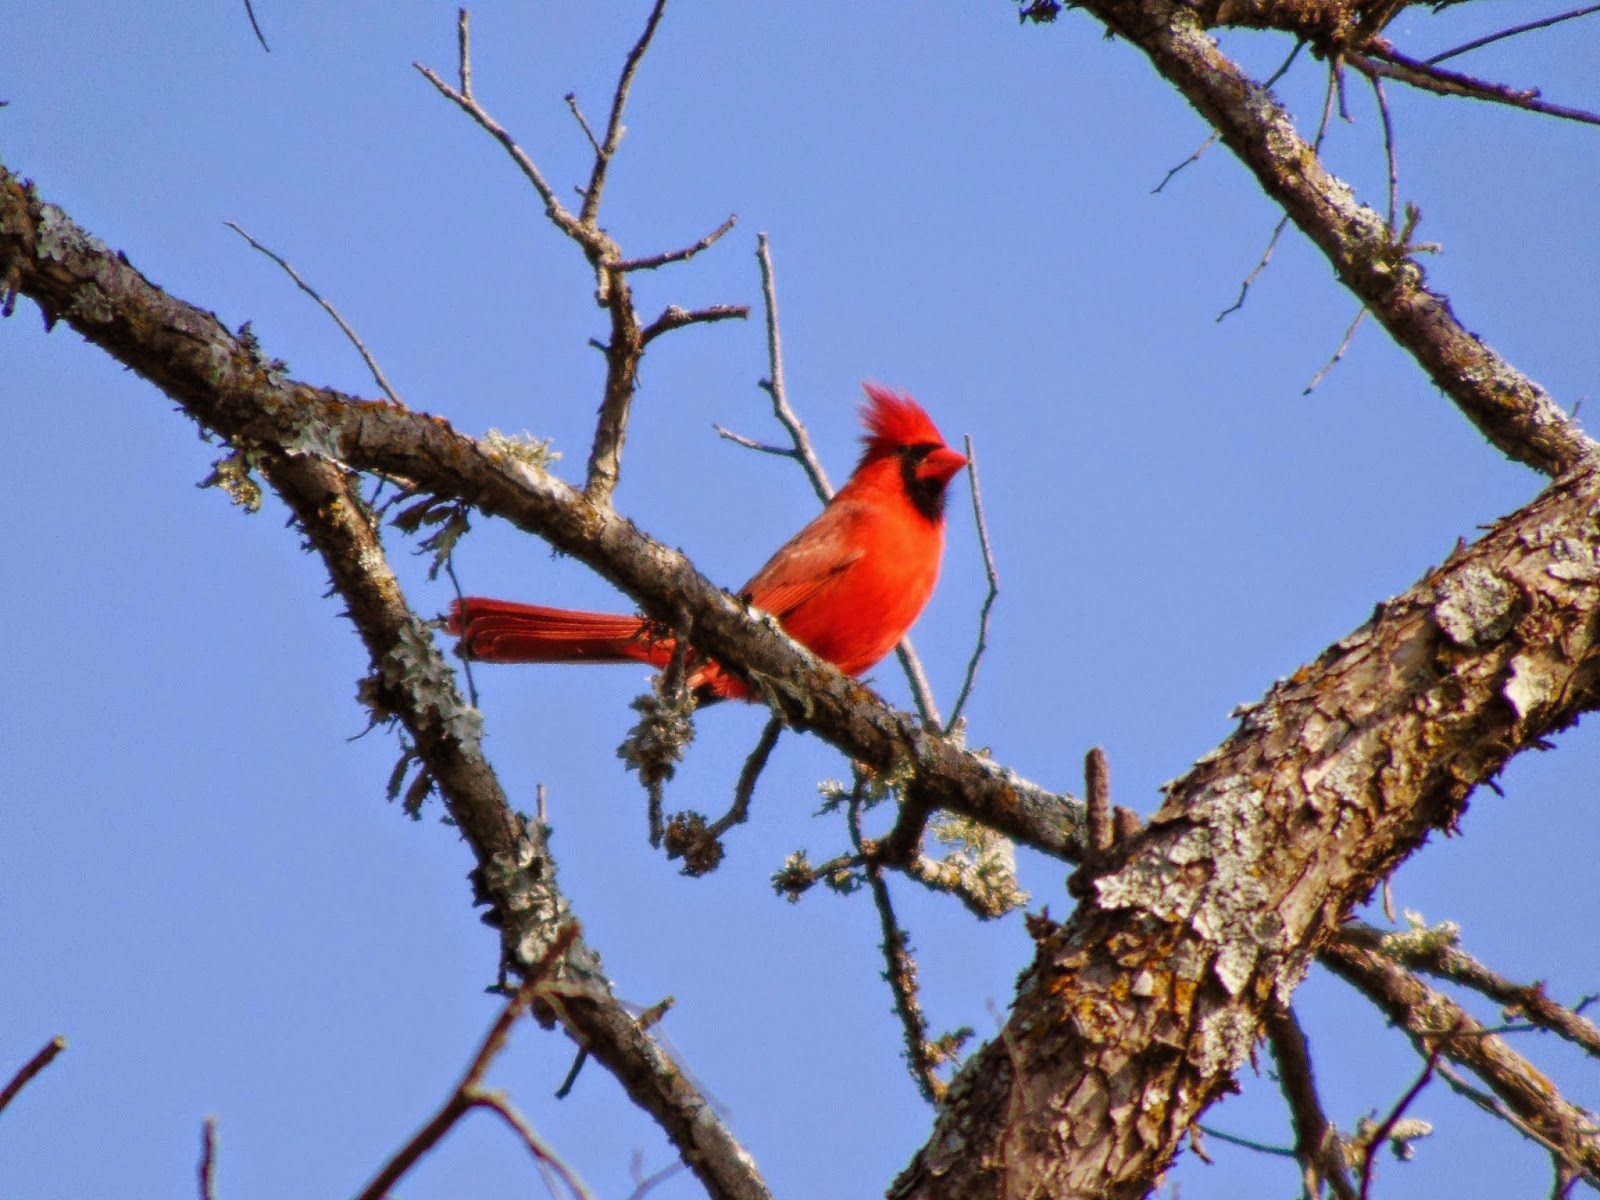 Cardinal in tree against blue sky in Texas green landscape